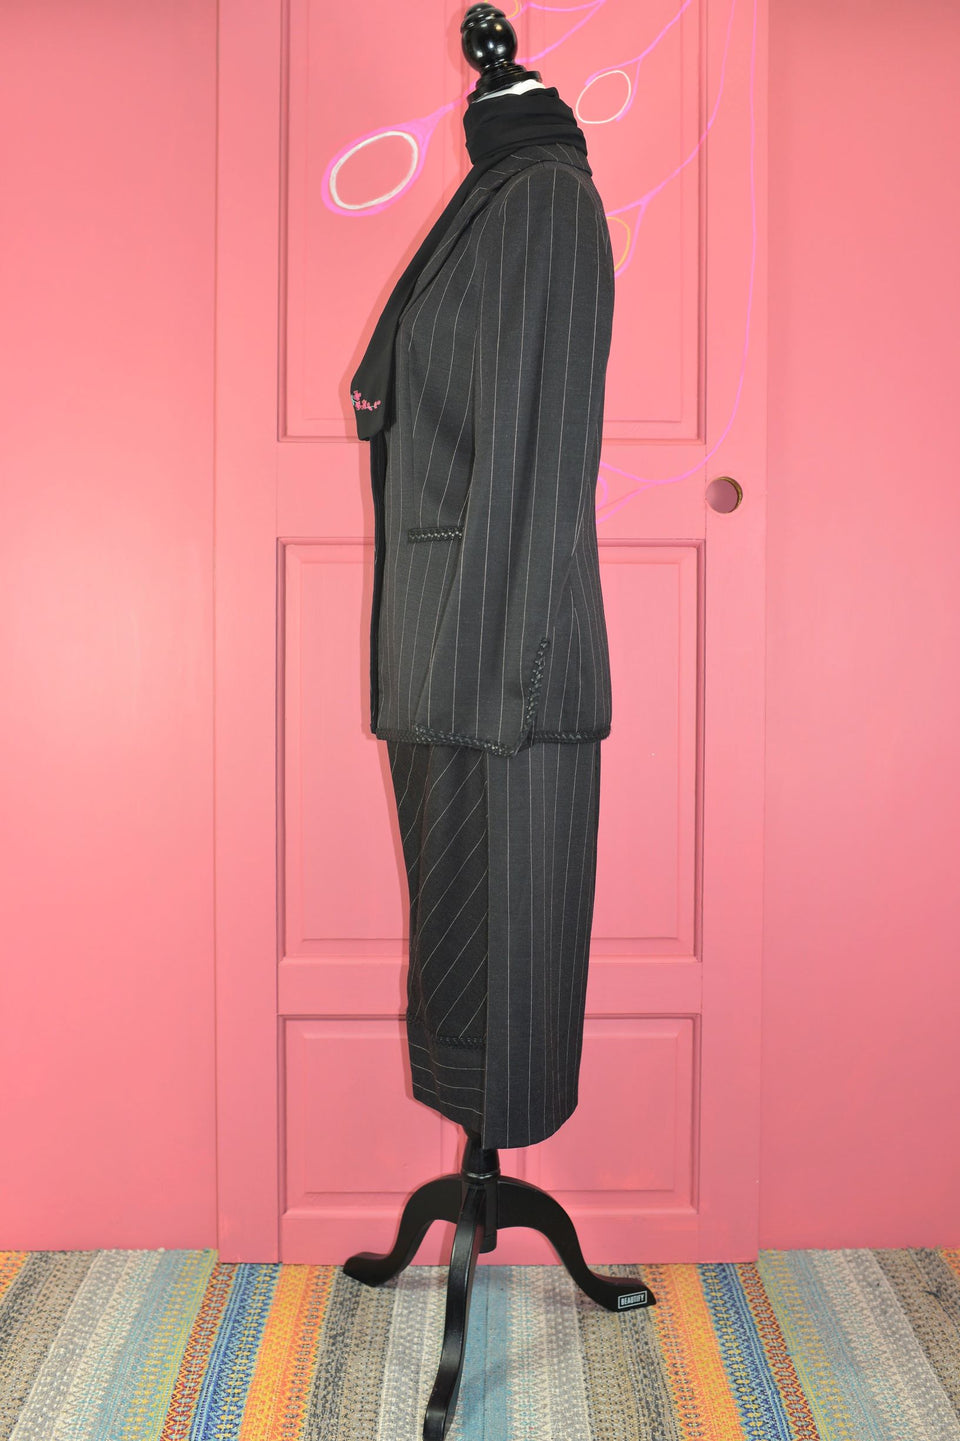 ANTONIO D'ERRICO Women's Black Wool Pinstripe Suit, Size 10. Pre-loved.